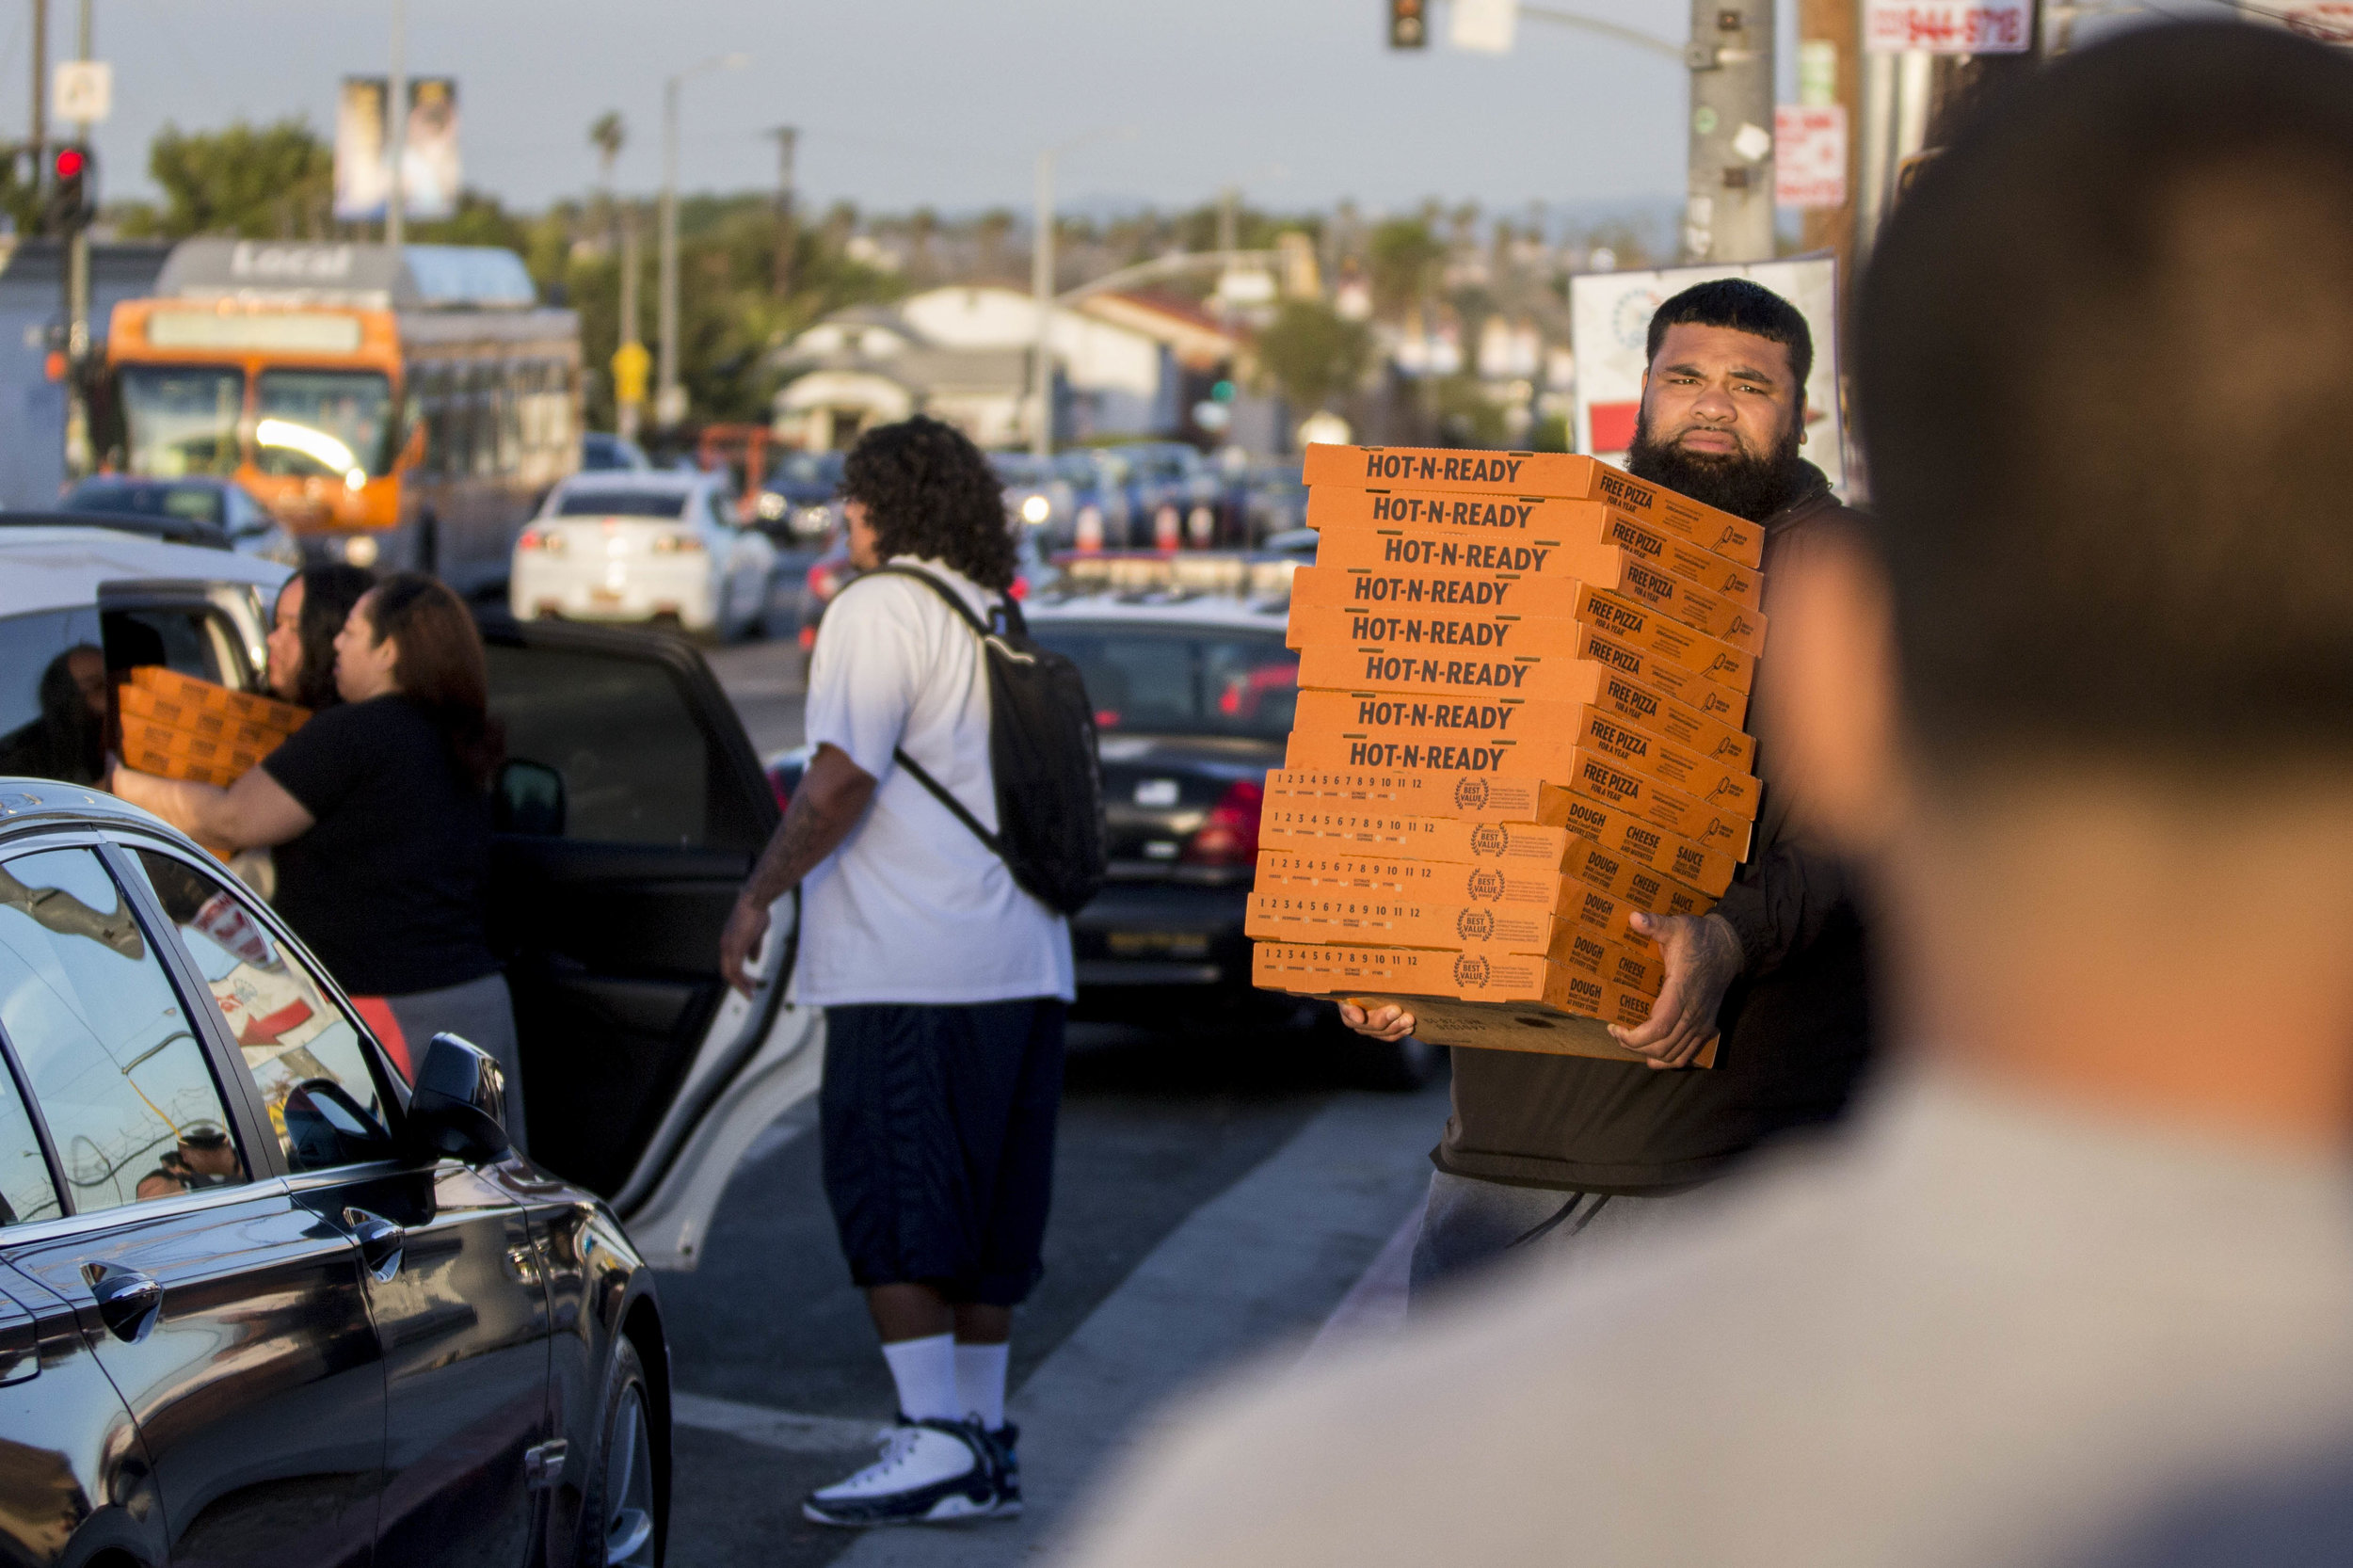 """A man helps unload a car and carries a stack of pizzas over to the area where a makeshift memorial honoring Nipsey Hussle is set up so they can feed all the family and fans who have come out to pay their respects to the slain rapper at The Marathon Clothing store in Los Angeles, California on April 6, 2010.  Renei Ngaue Fangupo along with her cousin and family wanted to do something to give back to the community, in the name of Nipsey Hussle who was known to be generous and very giving to the Tongan community. As a result they came out to the makeshift memorial on Tuesday, April 2 to set up a taco stand to feed people to keep their stomachs full and put their spirits at ease. It was from there that the idea grew and Vikashari Moala along with her family wanted to continue the give away by putting out the word that they would be back on Saturday. Over a 100 people participated in the giveaway which included around 300 pizzas, some sandwiches, chips, and sodas.  Fangupo said, """"We basically wanted people to feel free to come out and eat, in the same way that Nip welcomed everybody here at The Marathon Clothing store.""""  The 33-year-old rapper was murdered on March 31 in front of The Marathon Clothing store which he owned. (Jose Lopez)"""